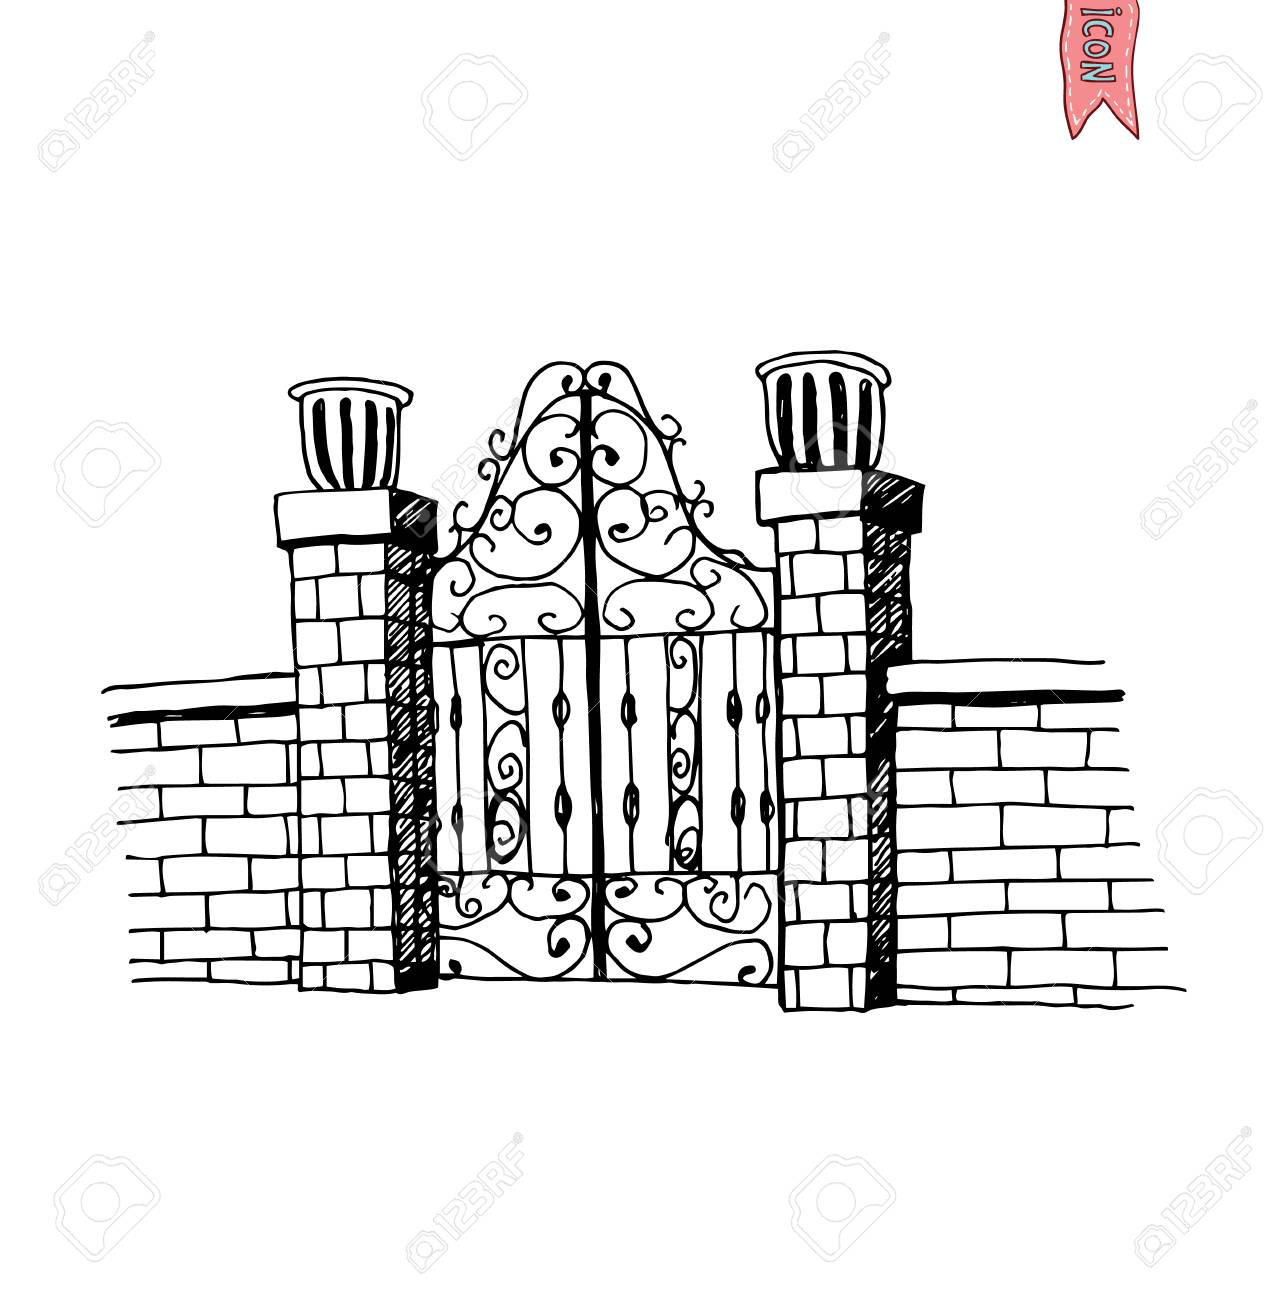 gate icon vector illustration royalty free cliparts vectors and rh 123rf com Cartoon Gate Fruit Vector